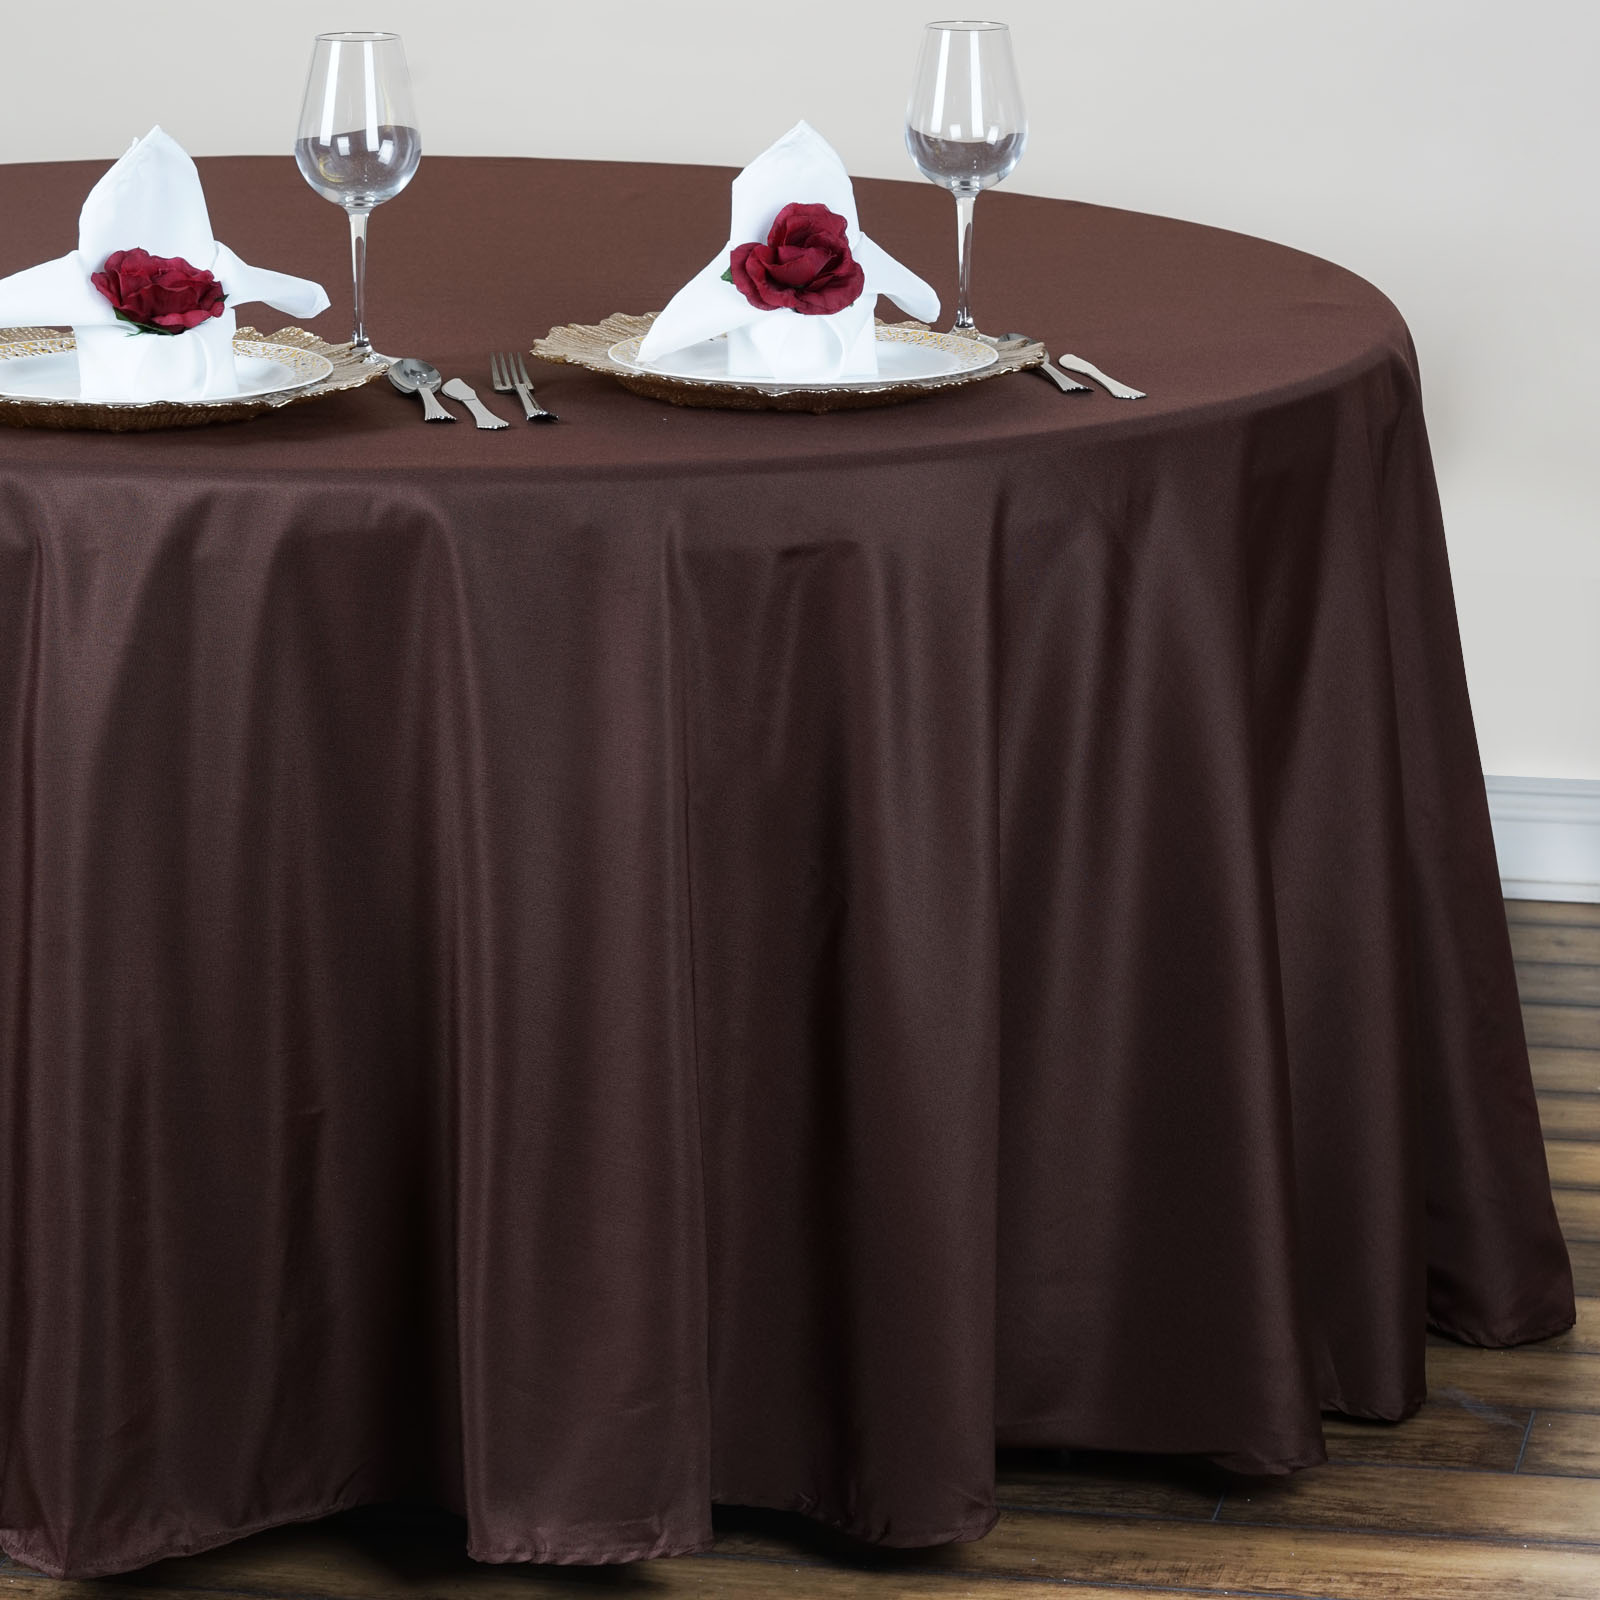 120 round polyester tablecloth wedding table linens decoration 120 034 round polyester tablecloth wedding table linens junglespirit Choice Image